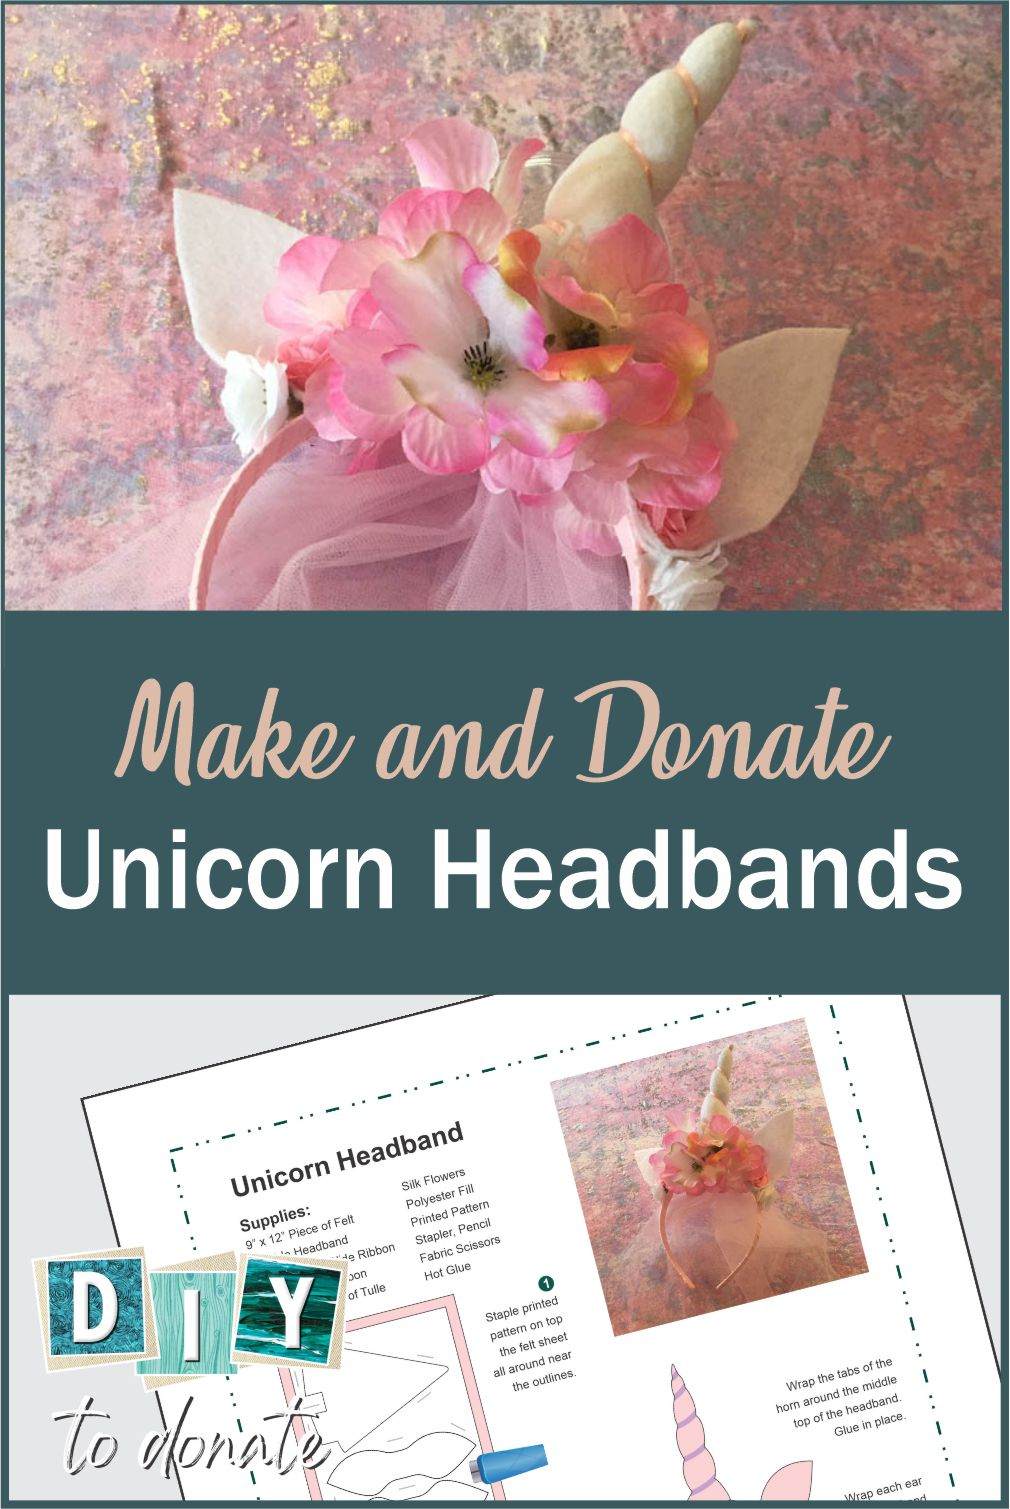 Find out the best way to make your handmade unicorn headbands wear and to donate them to little girls who need a little magic in their lives. #diytodonate #diy #unicorns #unicorn #unicorncraft #unicornheadband #headband #unicornhorm #littlegirls #magic #donate